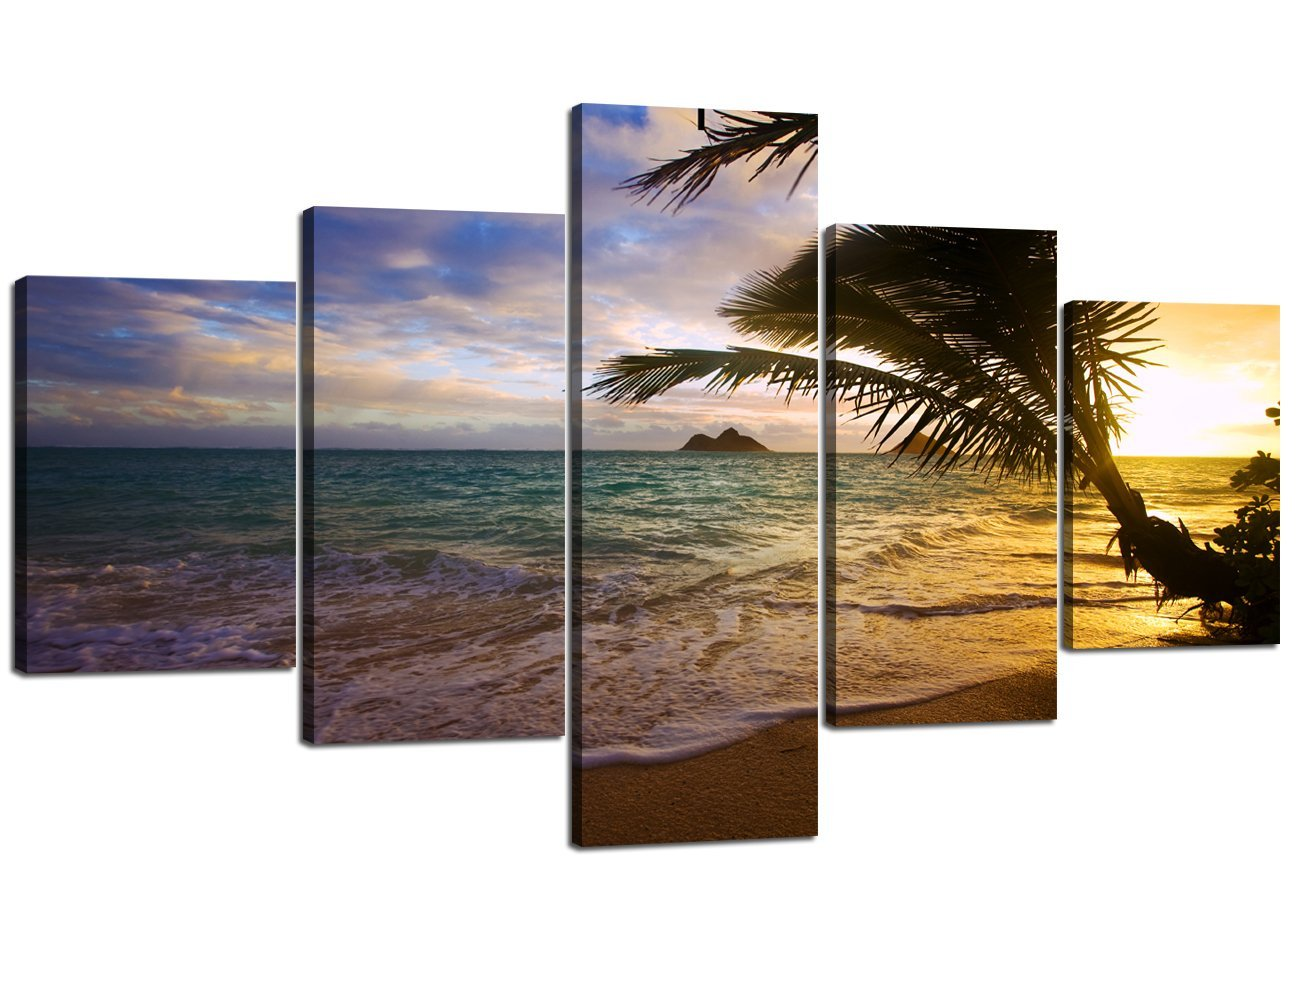 Ocean_29 Large Size Scene of Sea Waves Palm Tree Landscape Picture Modern Painting on Canvas 5 Piece Framed Wall Art for Living Room Bedroom Kitchen Home Decor Stretched Gallery Canvas Wrap Giclee Print (60''W x 32''H)